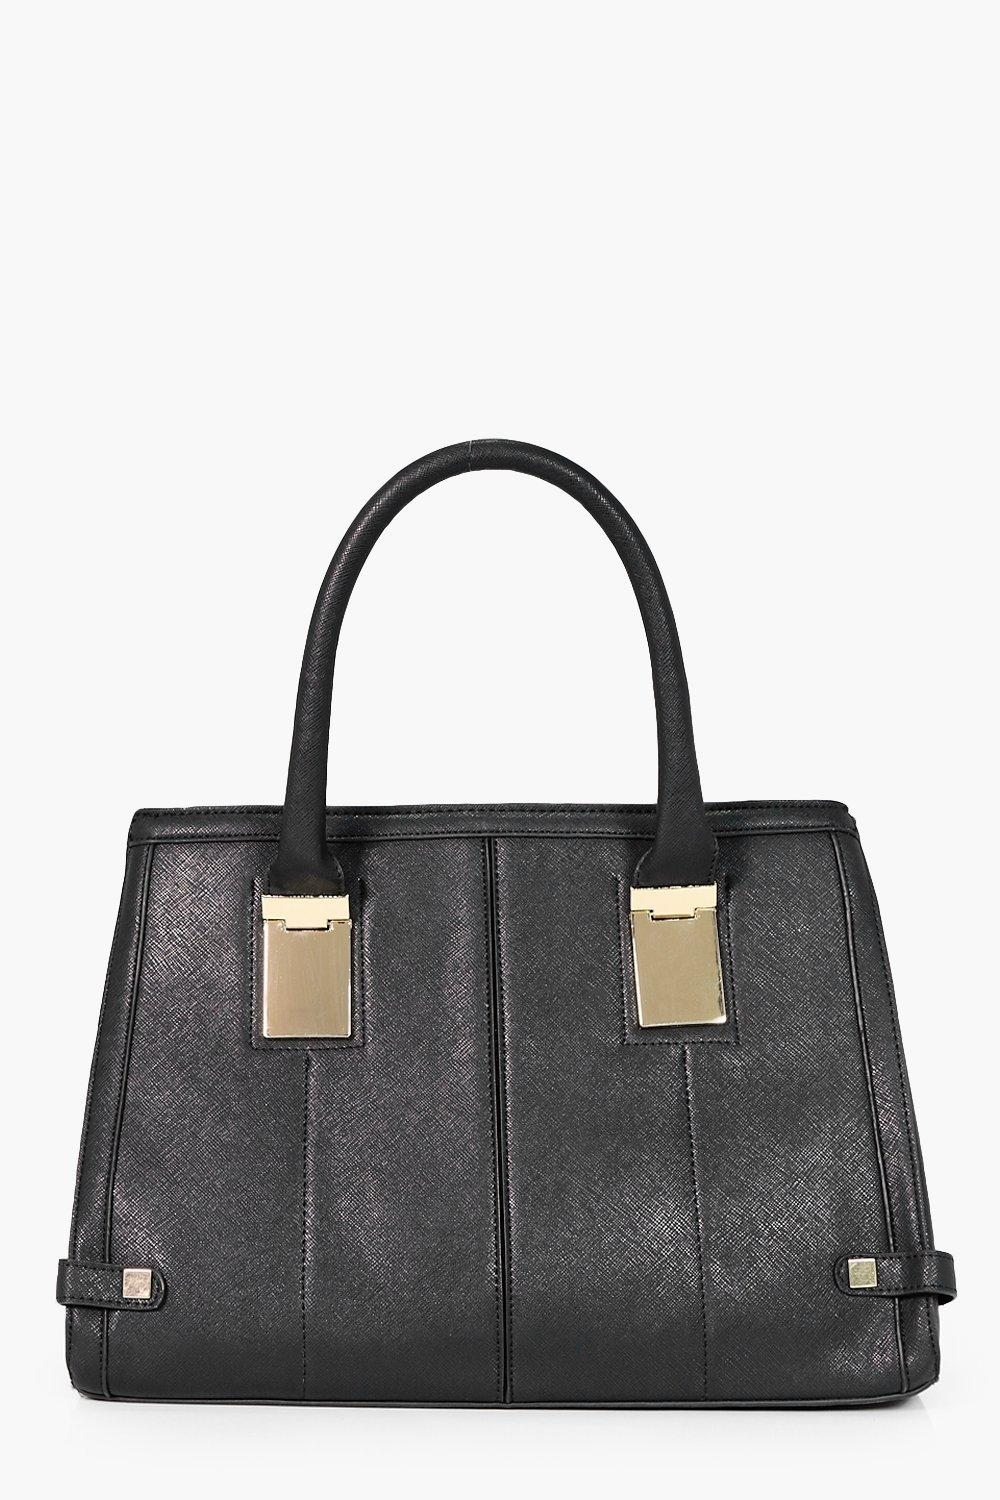 Crosshatch Tote - black - Tabitha Crosshatch Tote